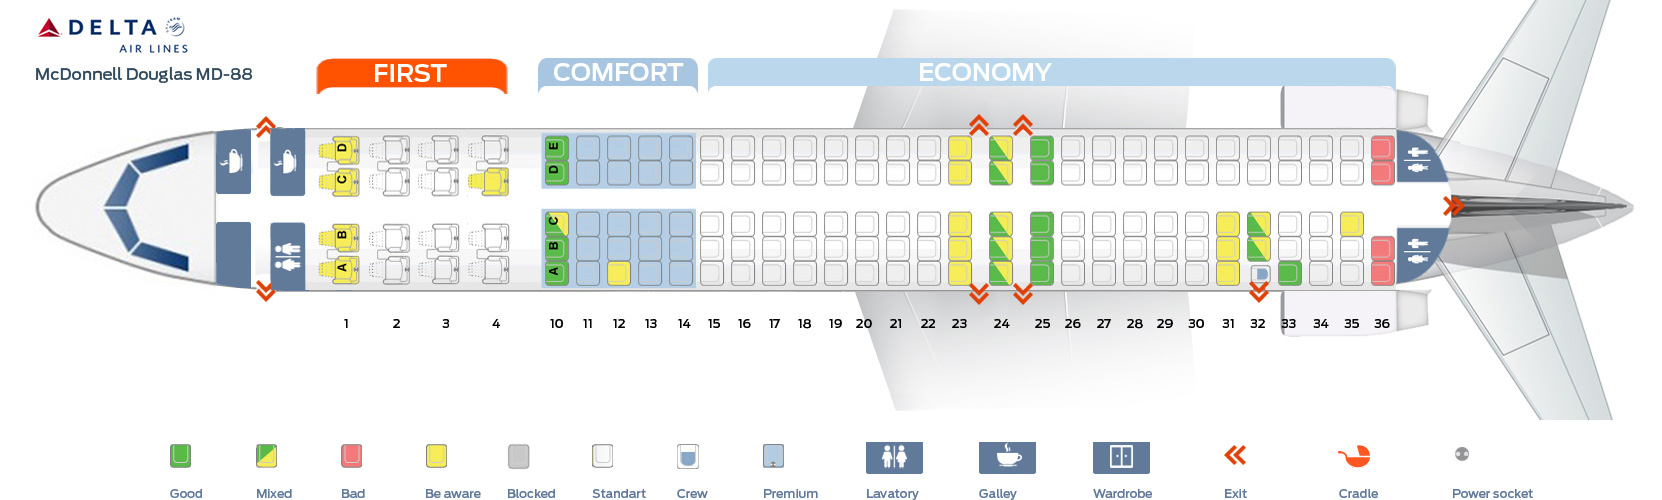 Seat_map_Delta_Airlines_MD_88